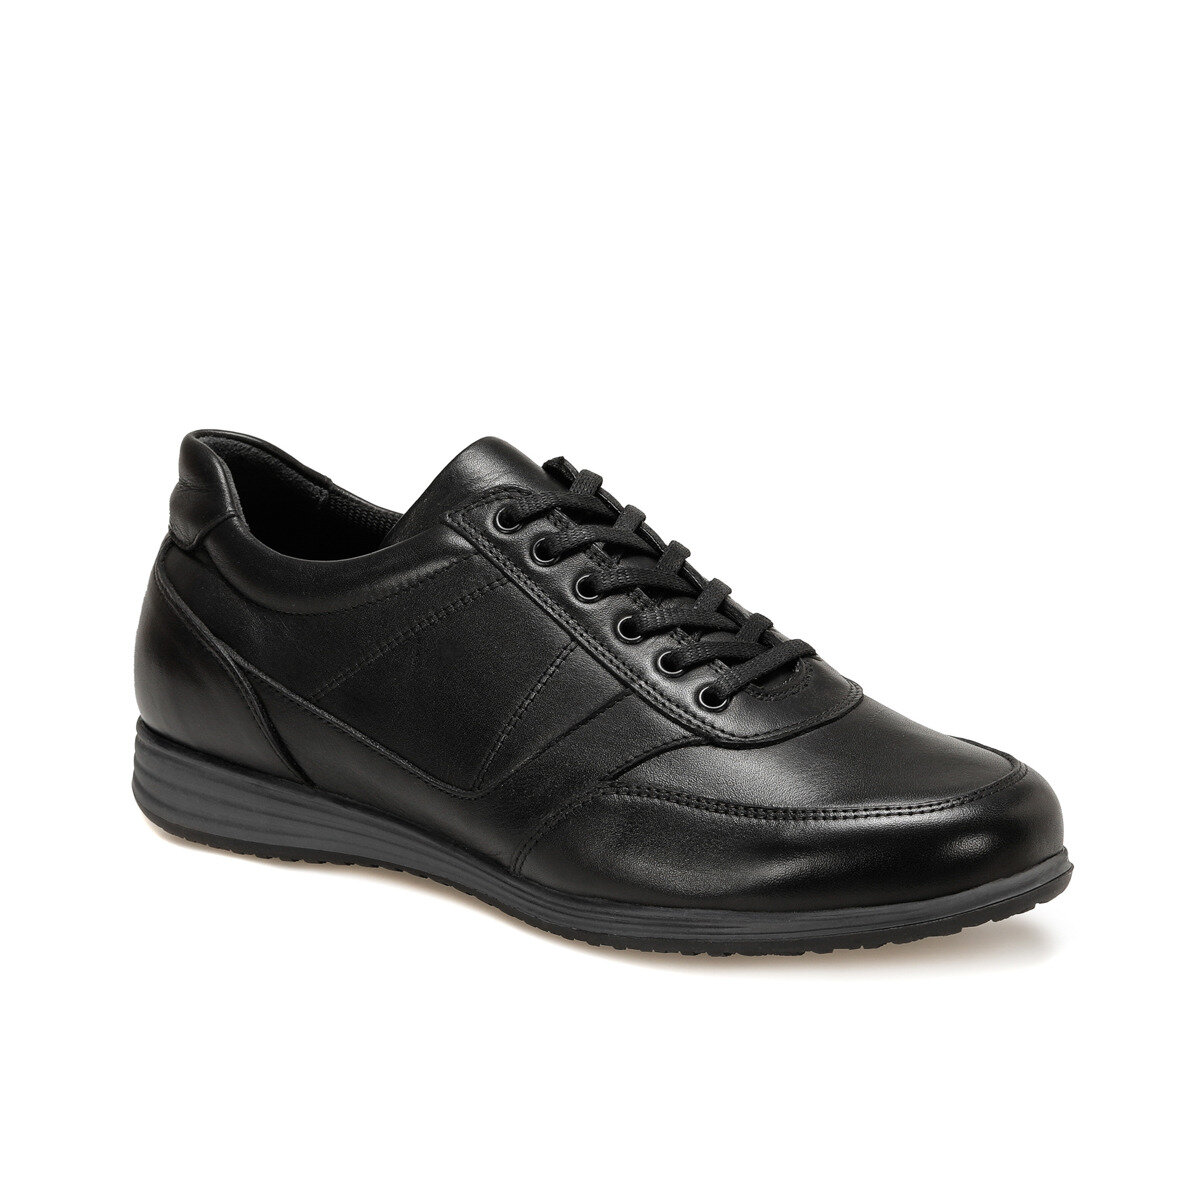 FLO GBS117-D Black Men Casual Shoes Oxide